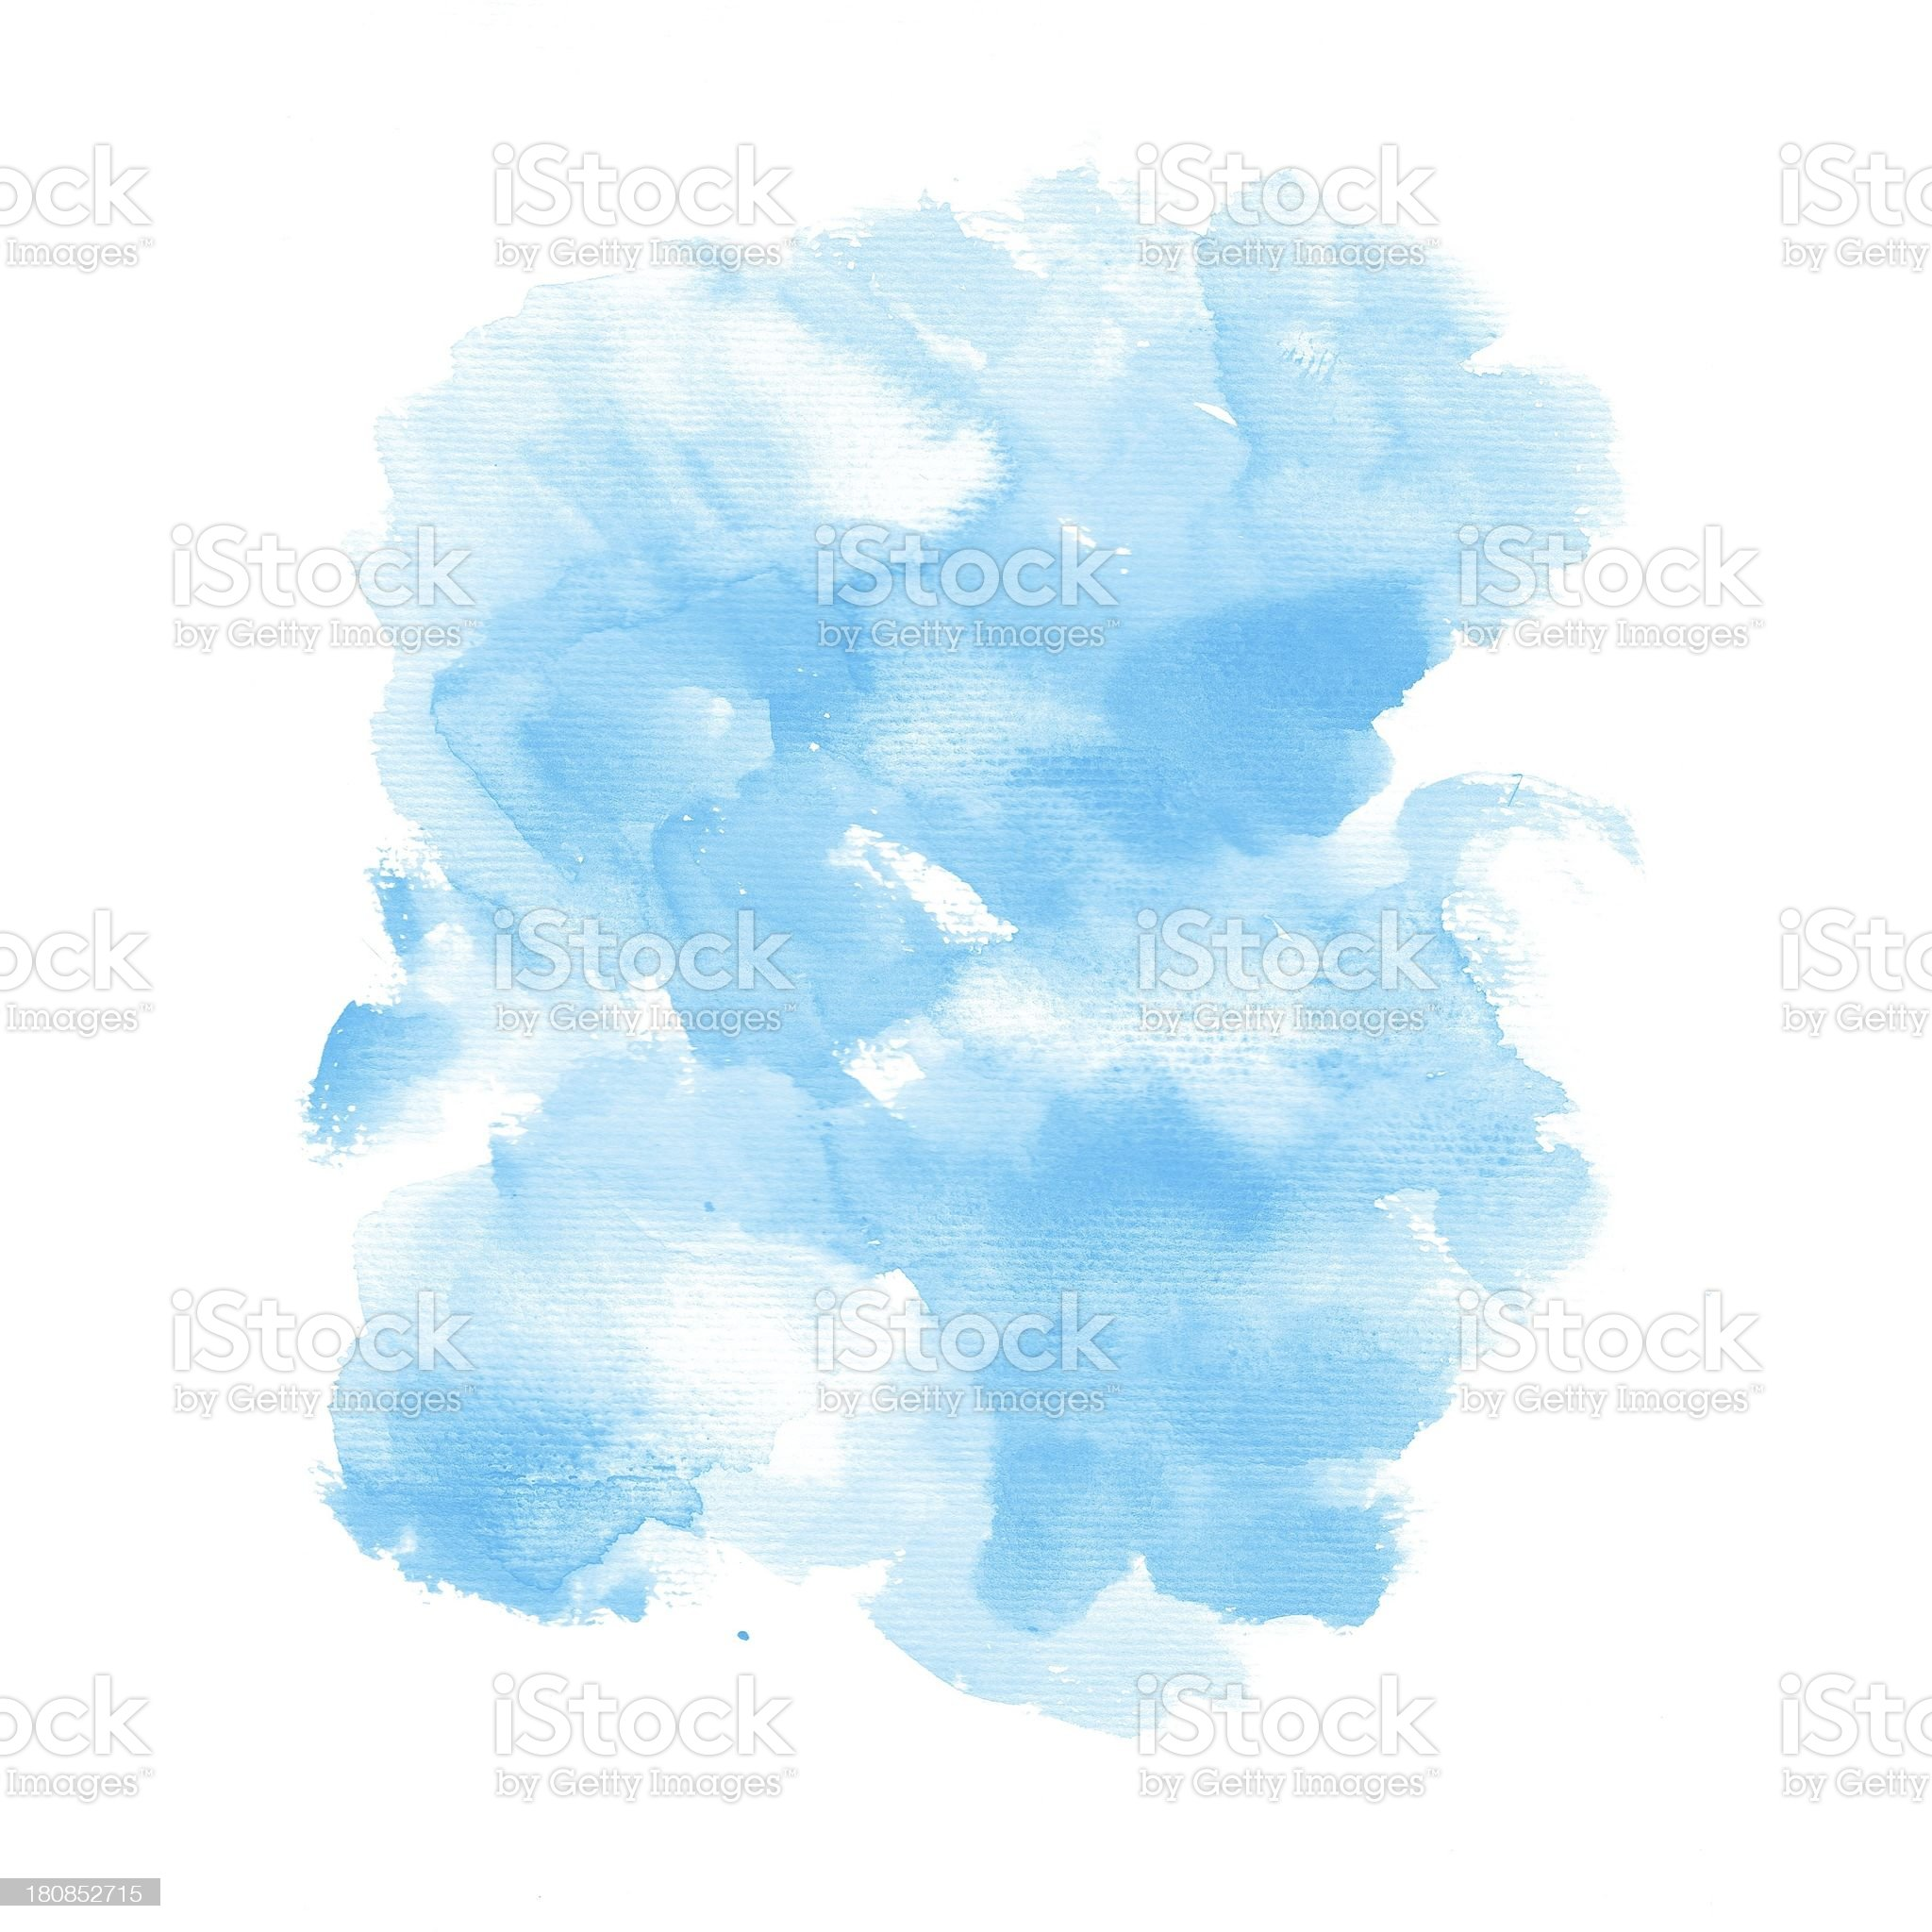 Colorful water color painting background royalty-free stock vector art